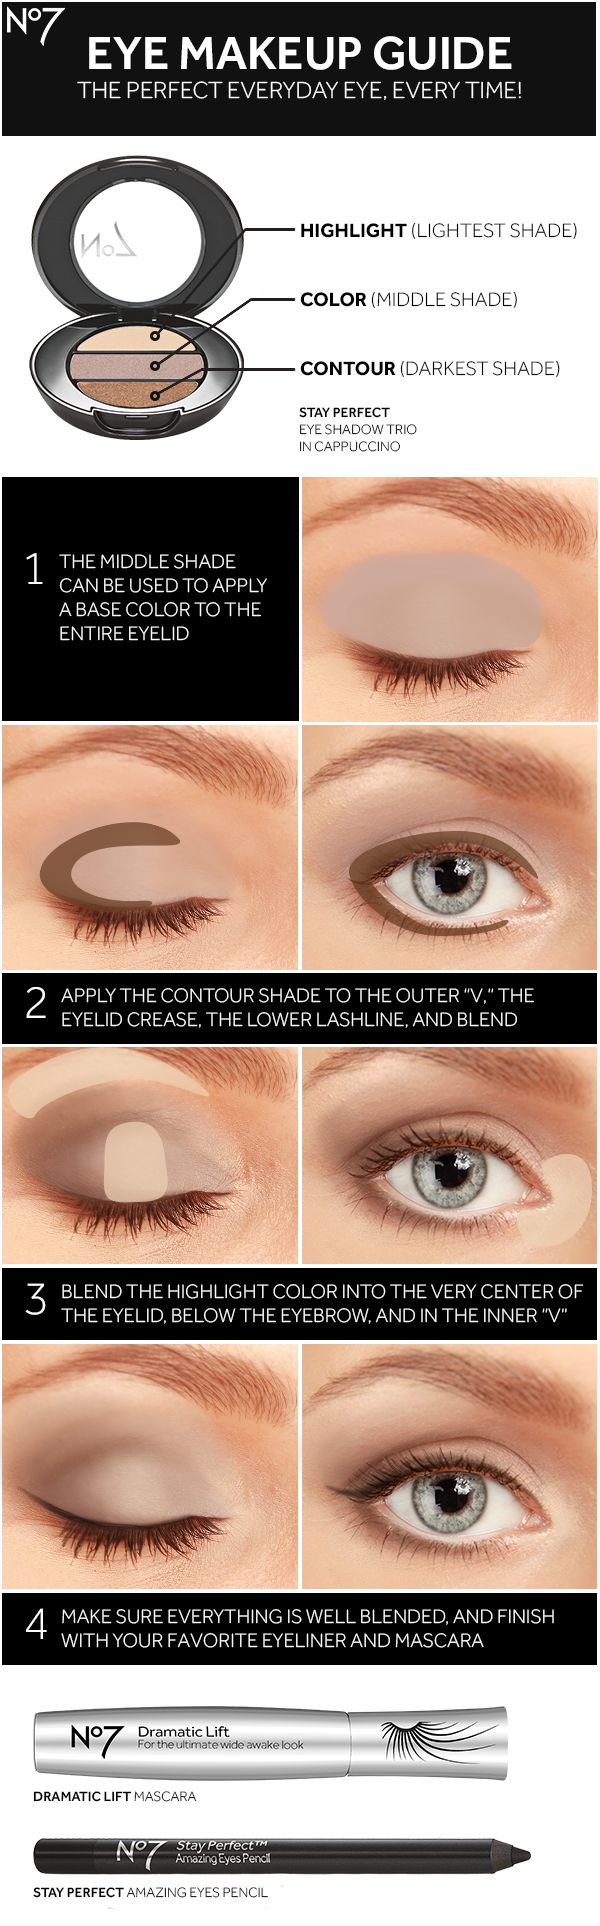 Sharpen your eye makeup skills with No7 eye shadow, mascara, eyeliner and this how-to guide for a brighter